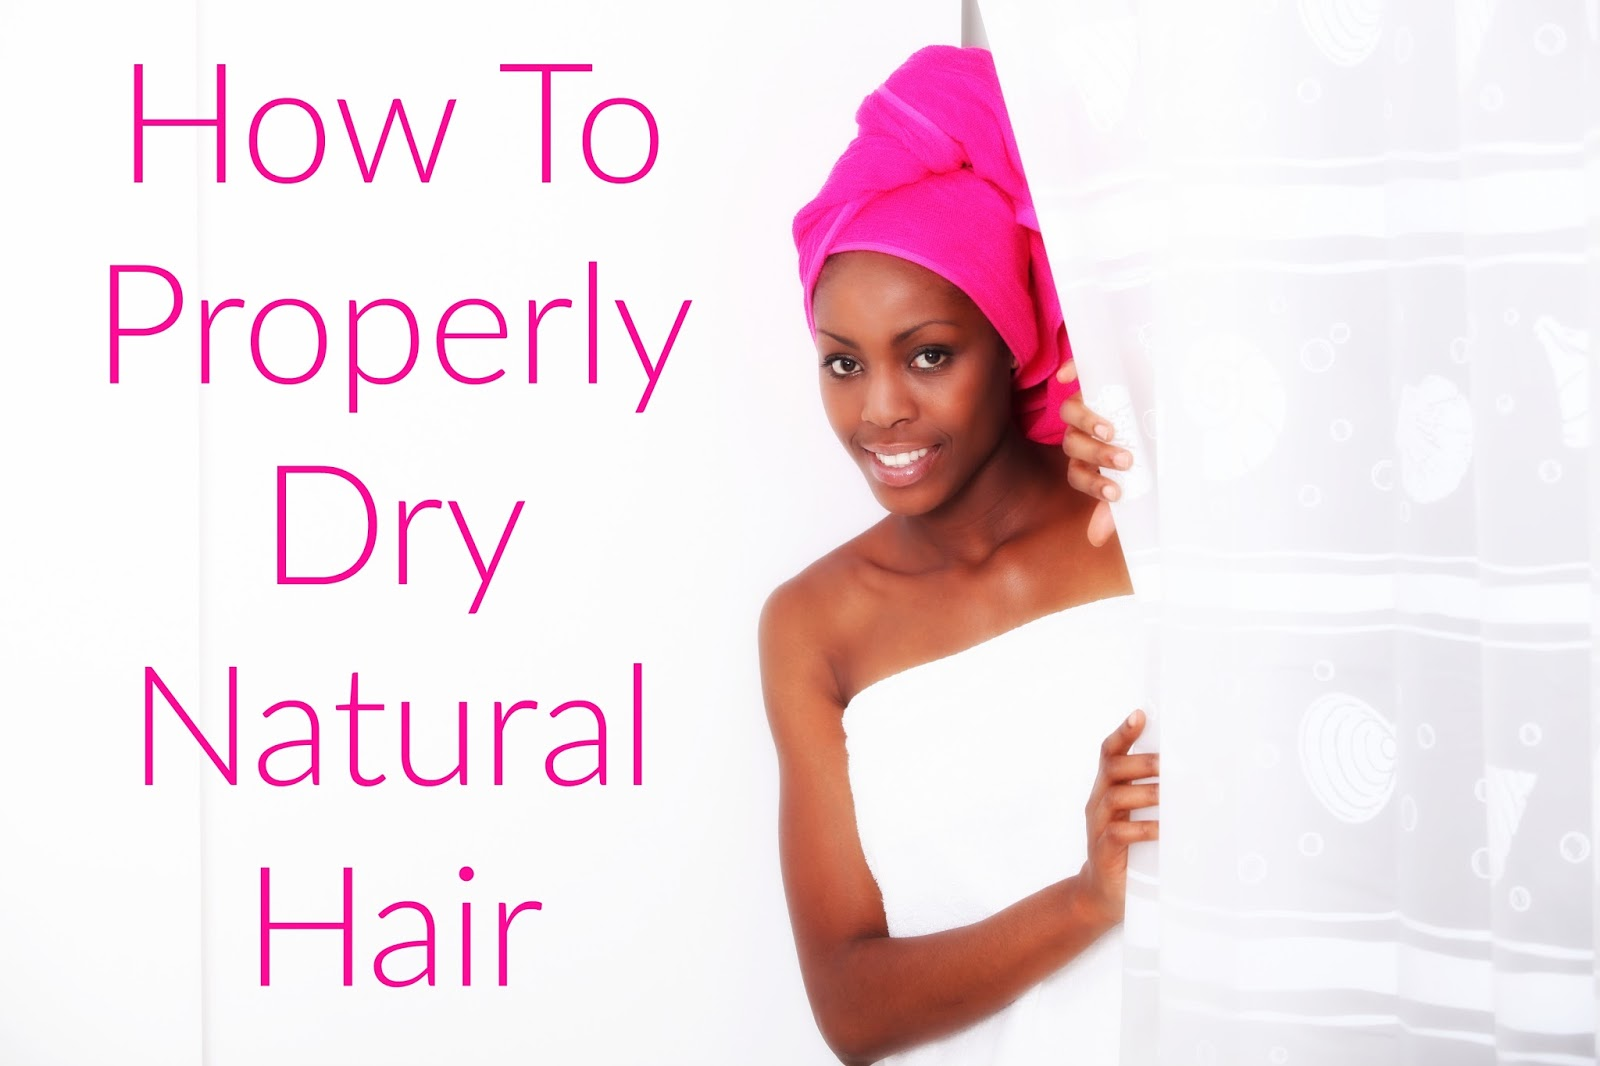 How To Properly Dry Natural Hair